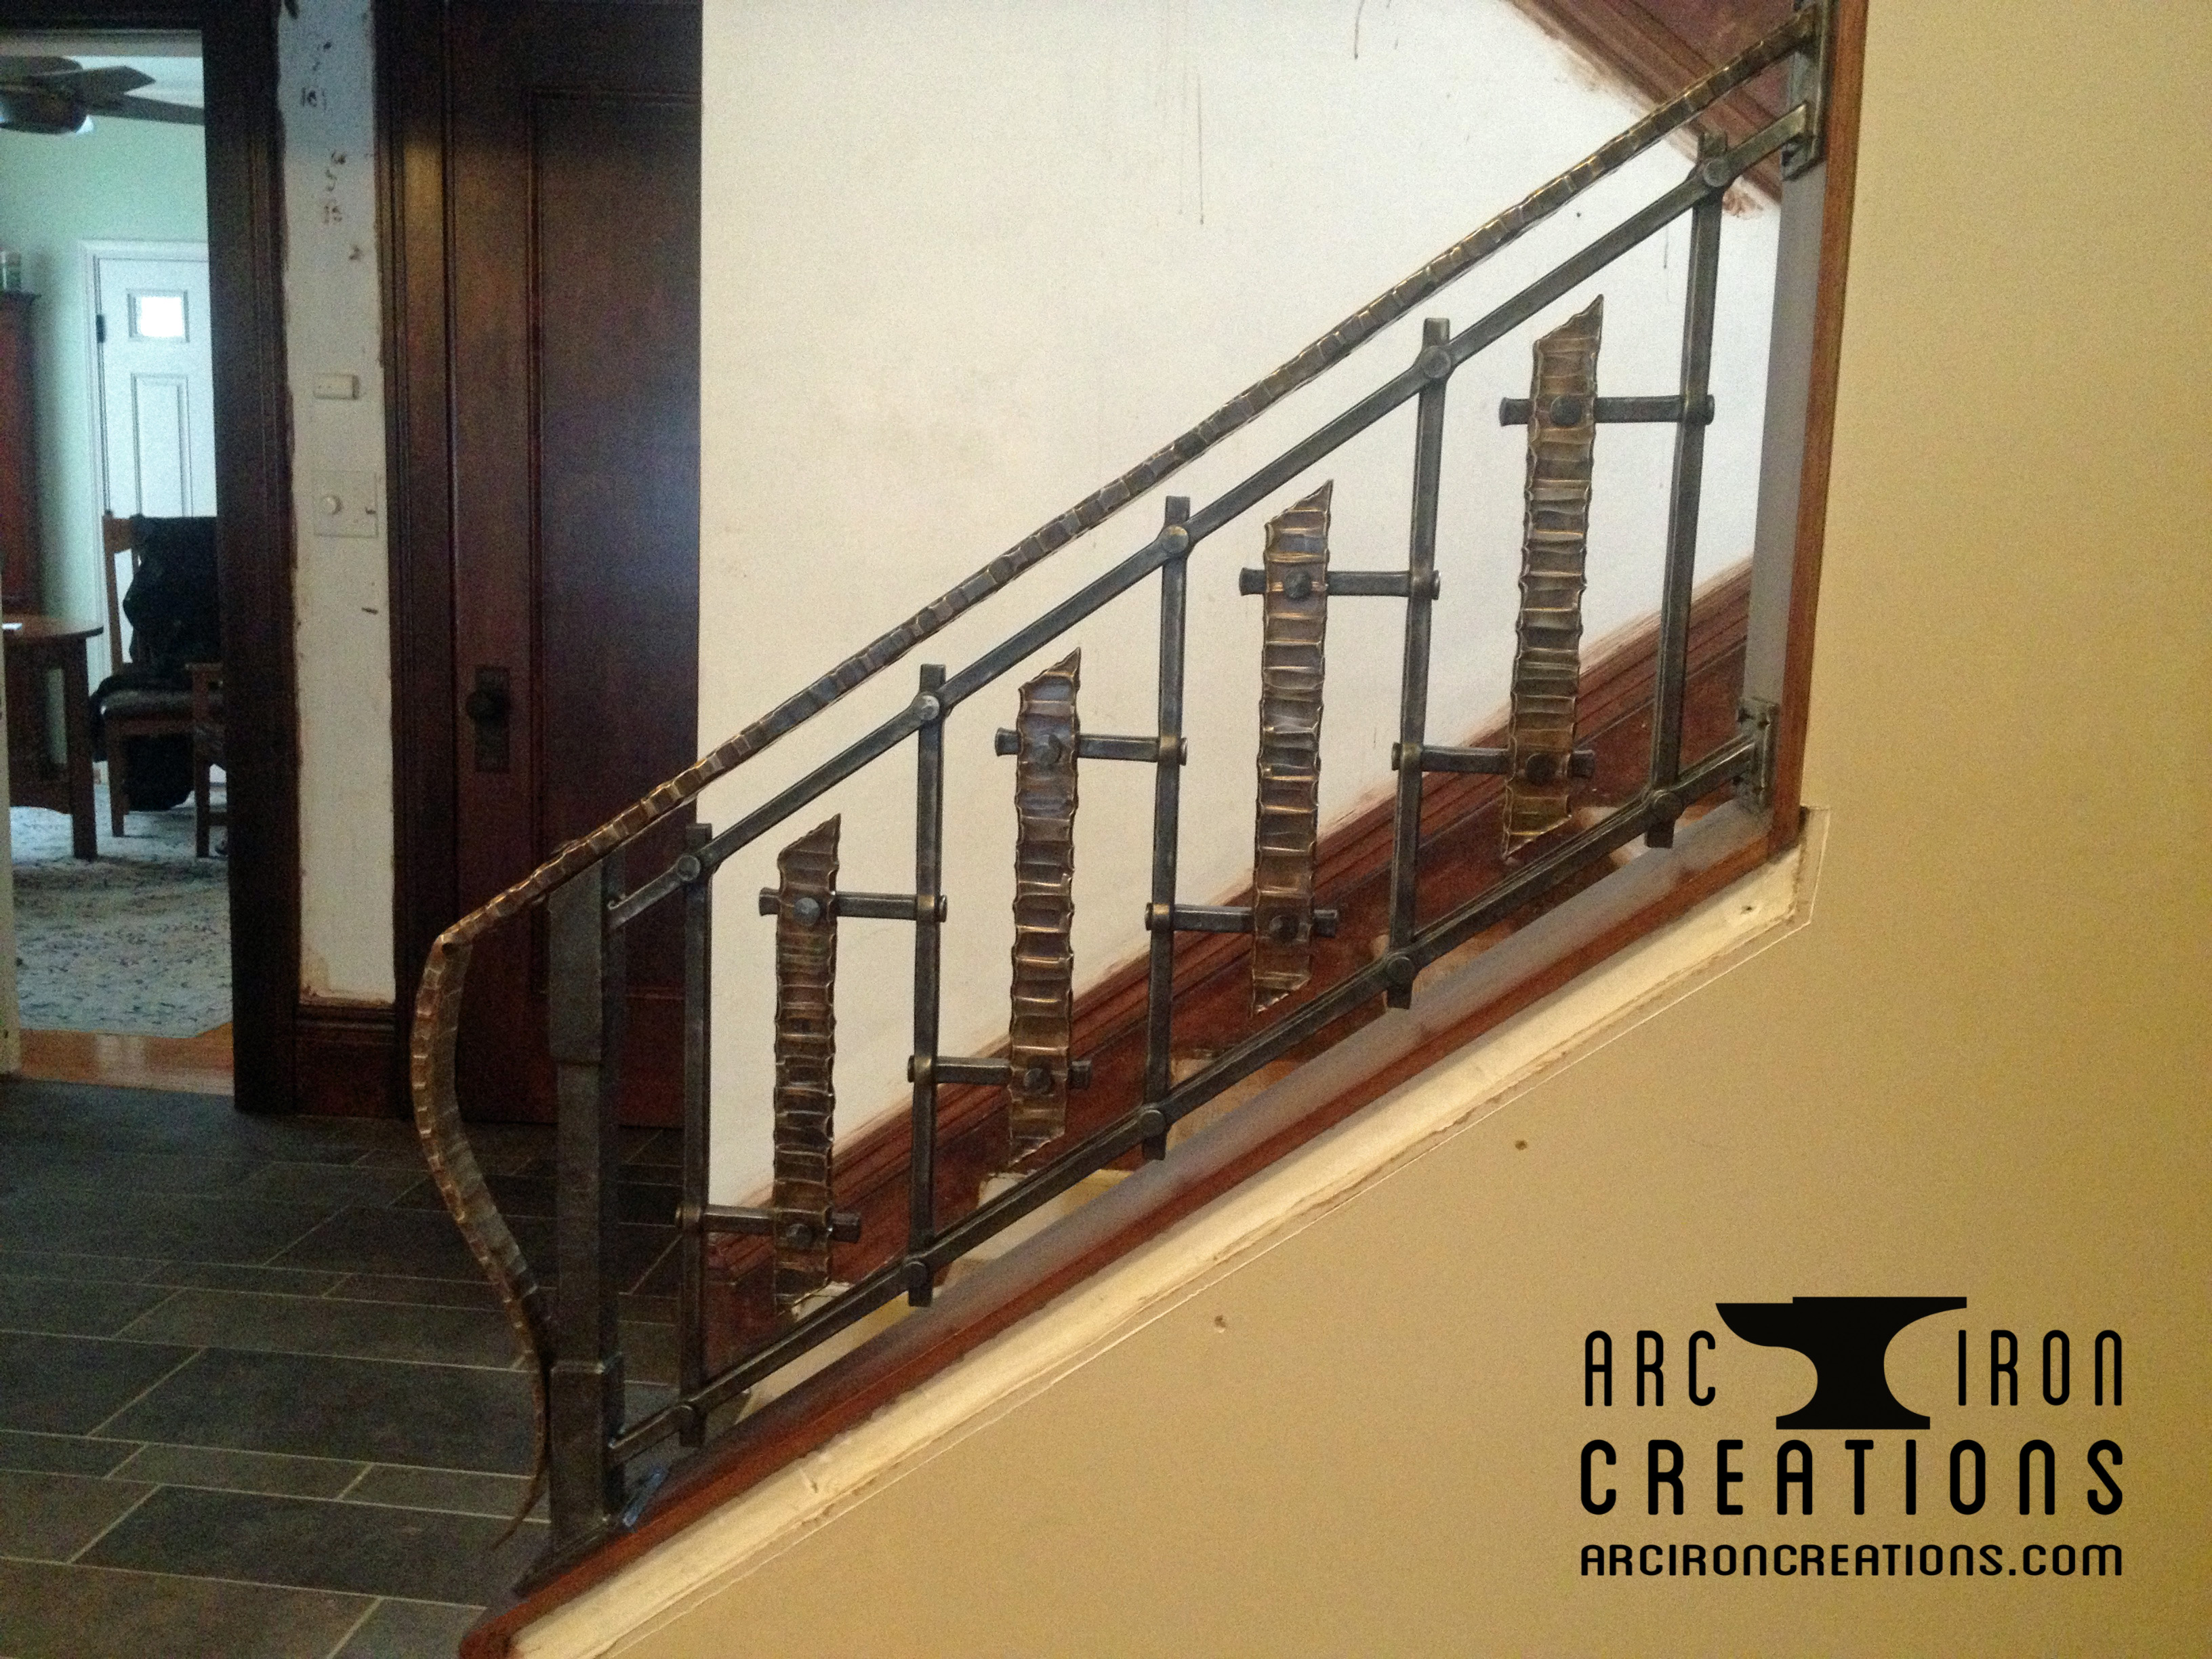 Railings arc iron creations for Craftsman picture rail